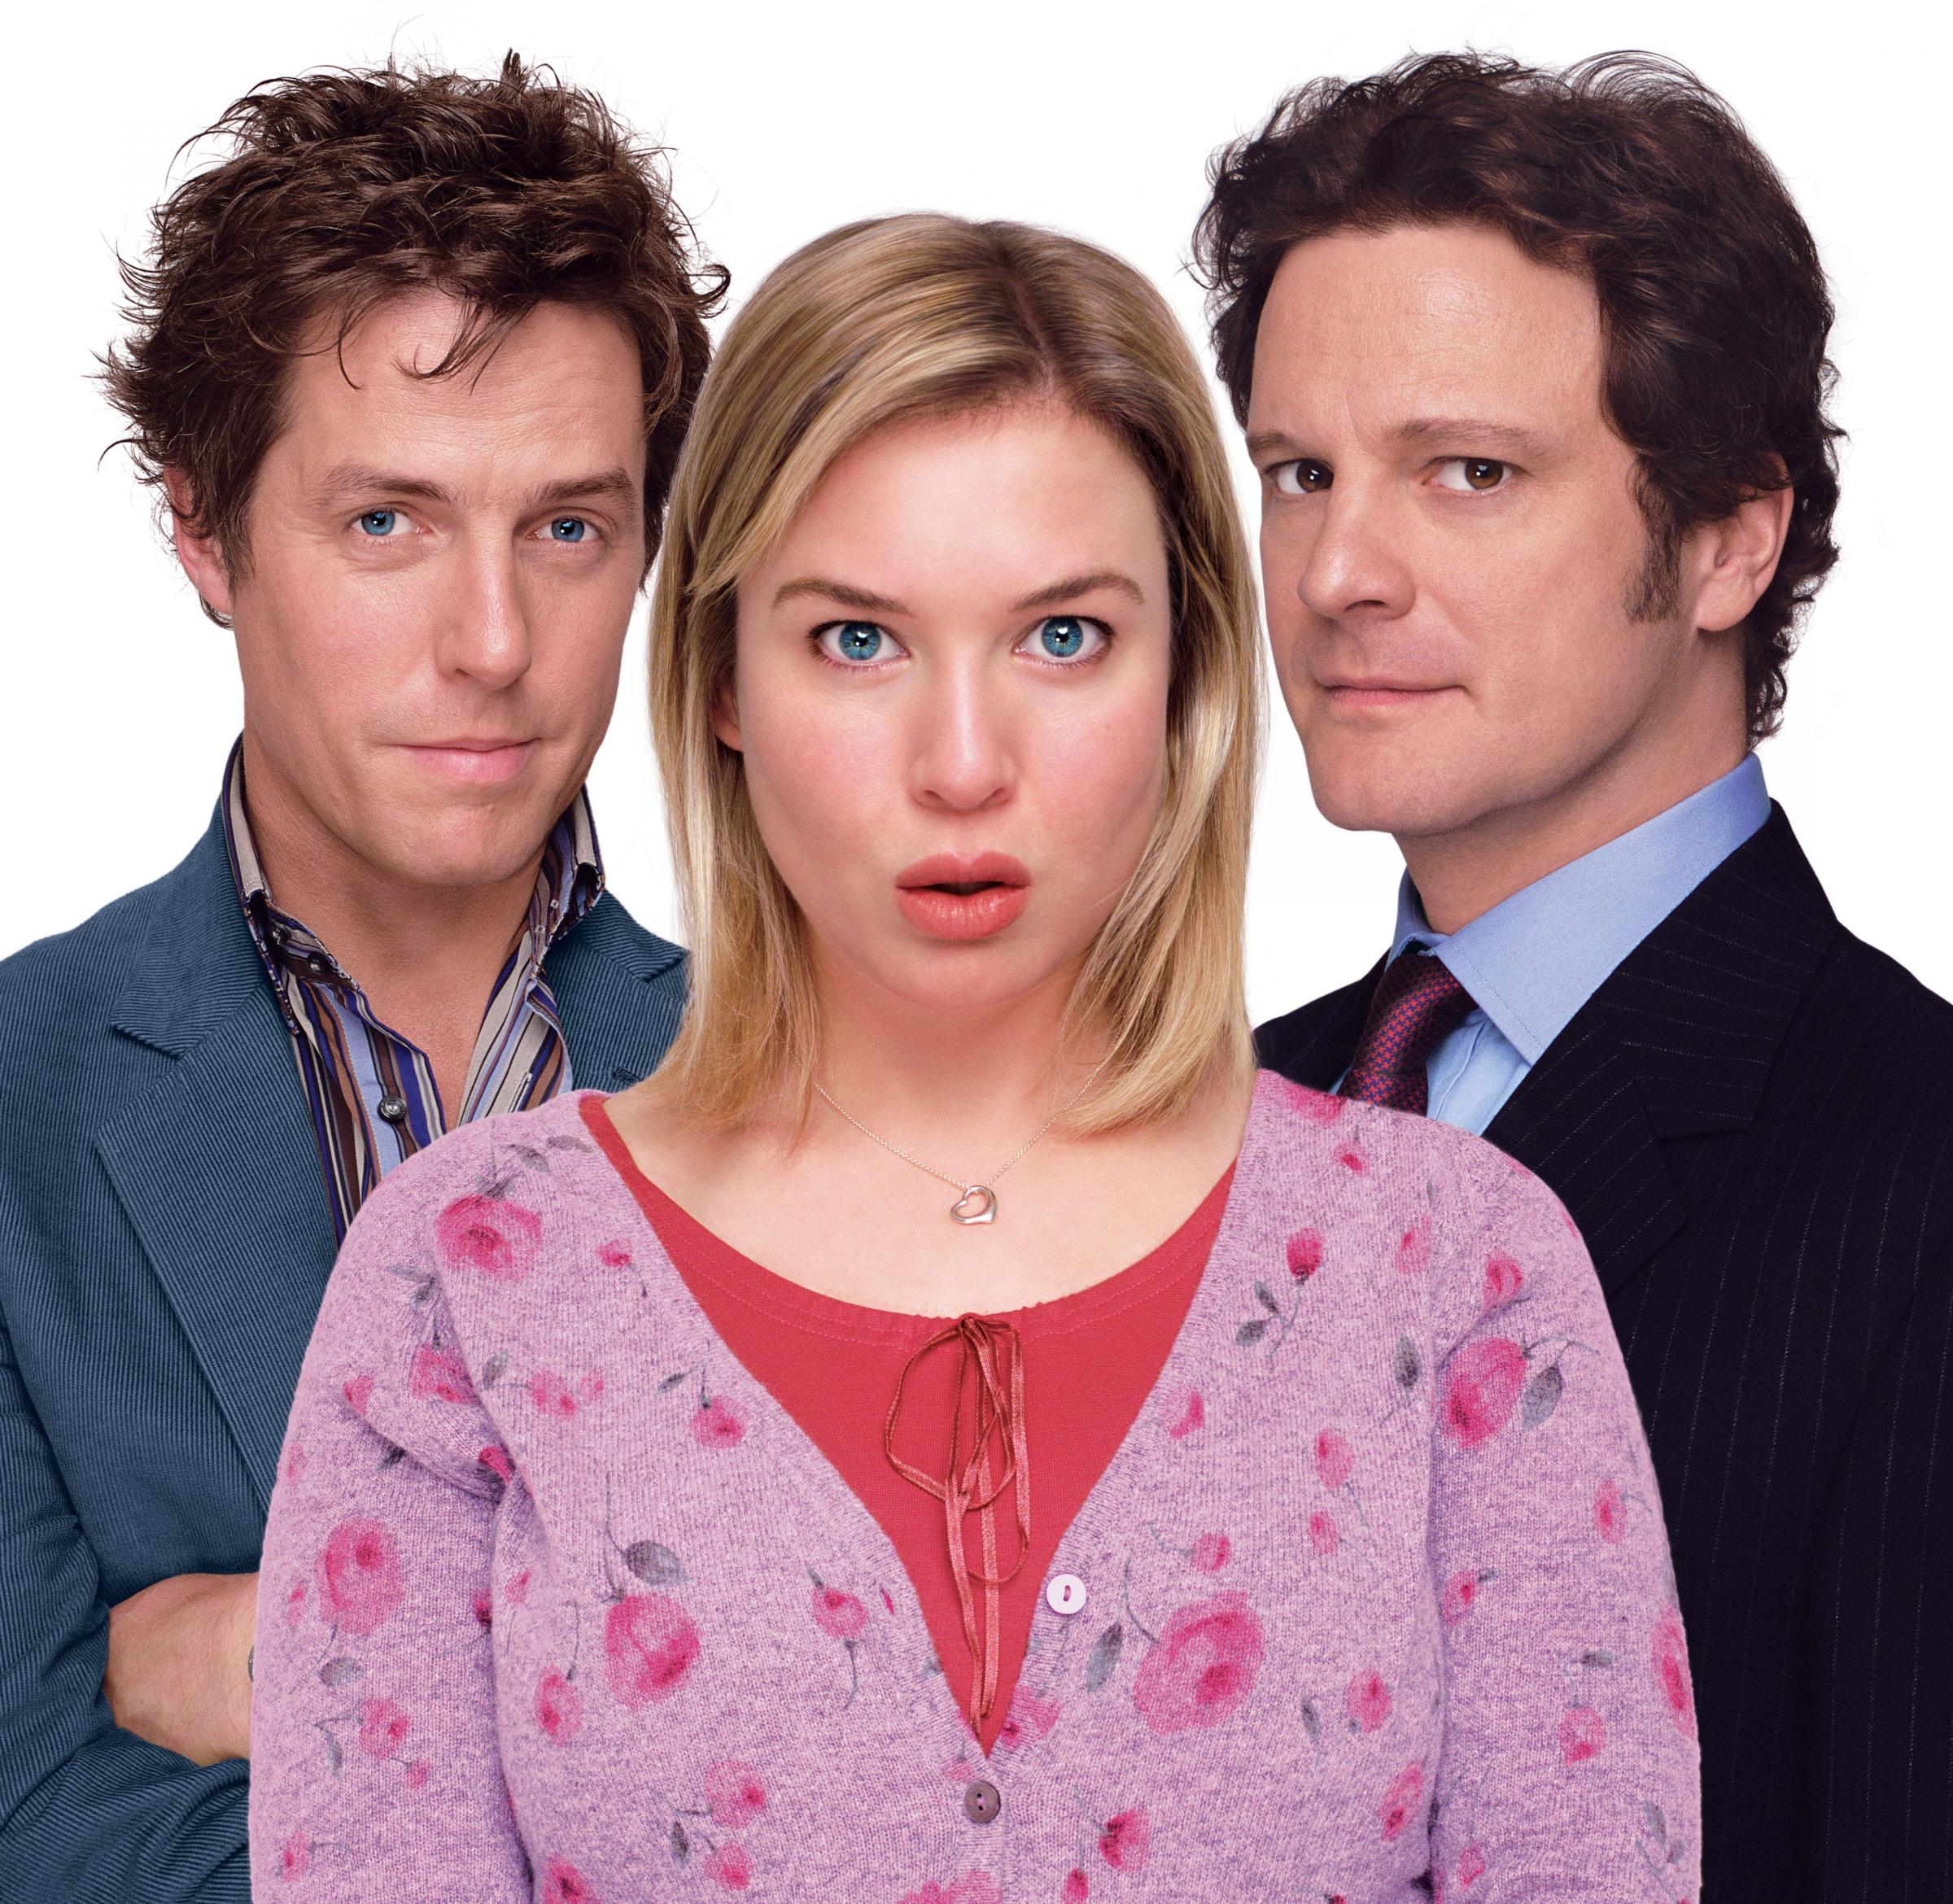 Che casino bridget jones